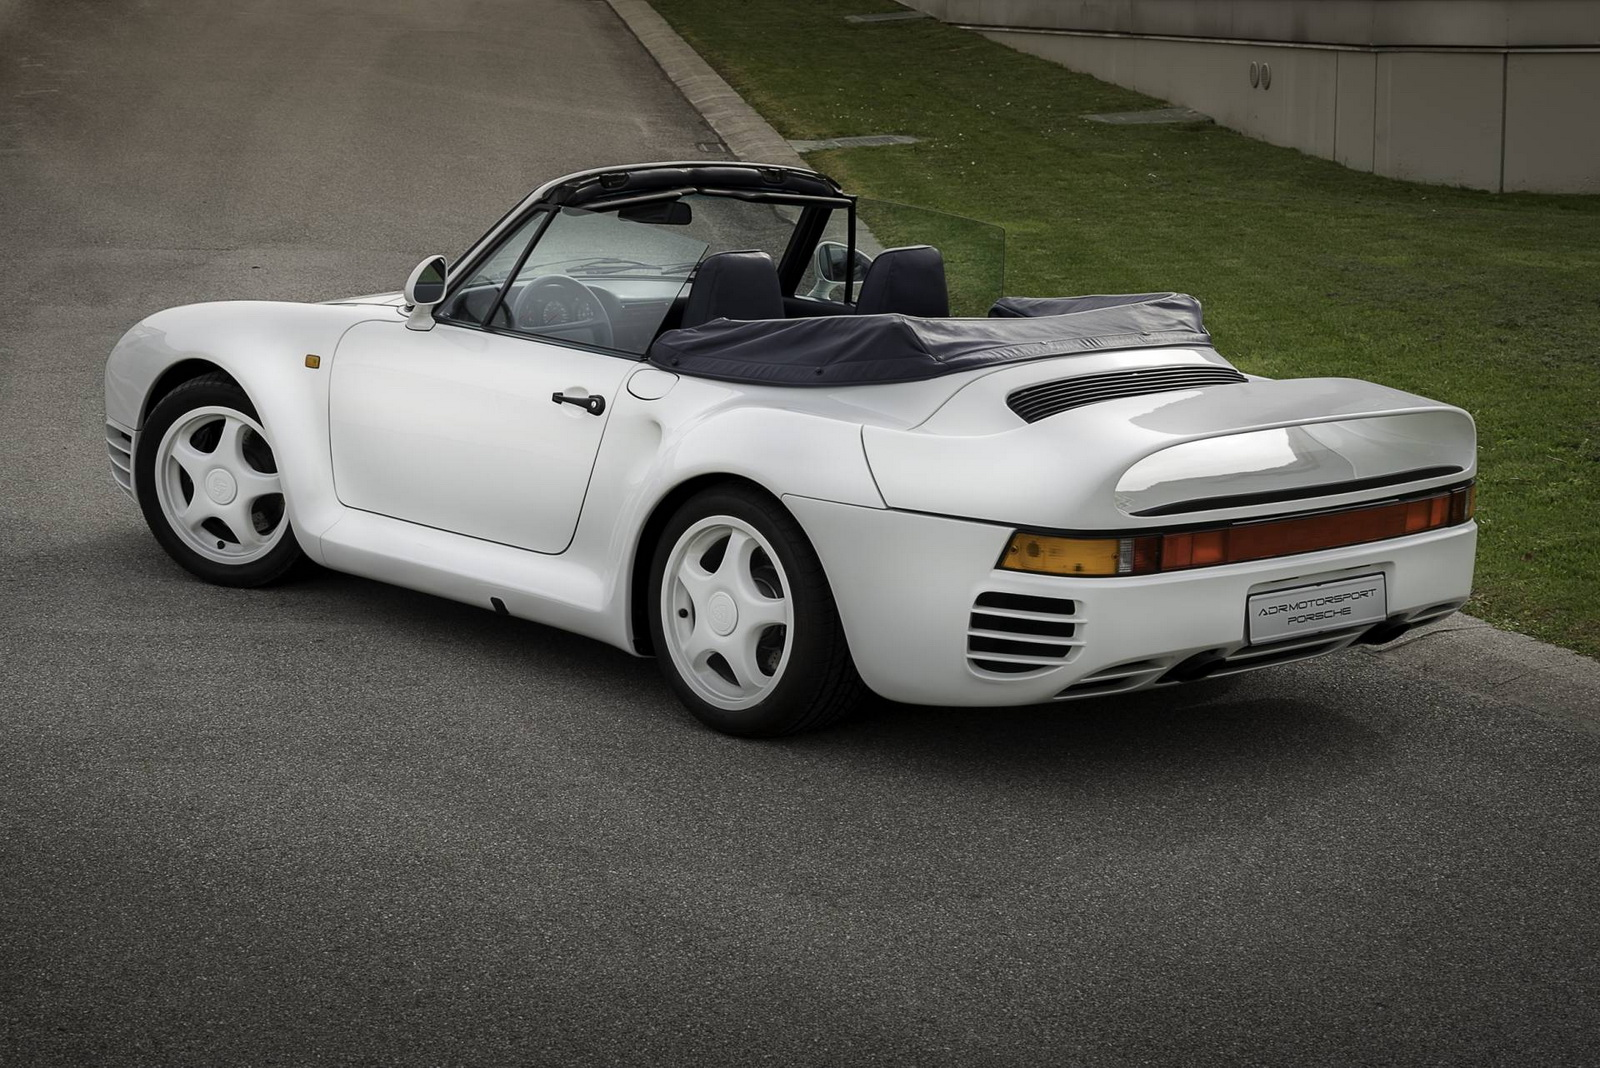 Cars For Sale Los Angeles >> One-off Porsche 959 convertible up for sale